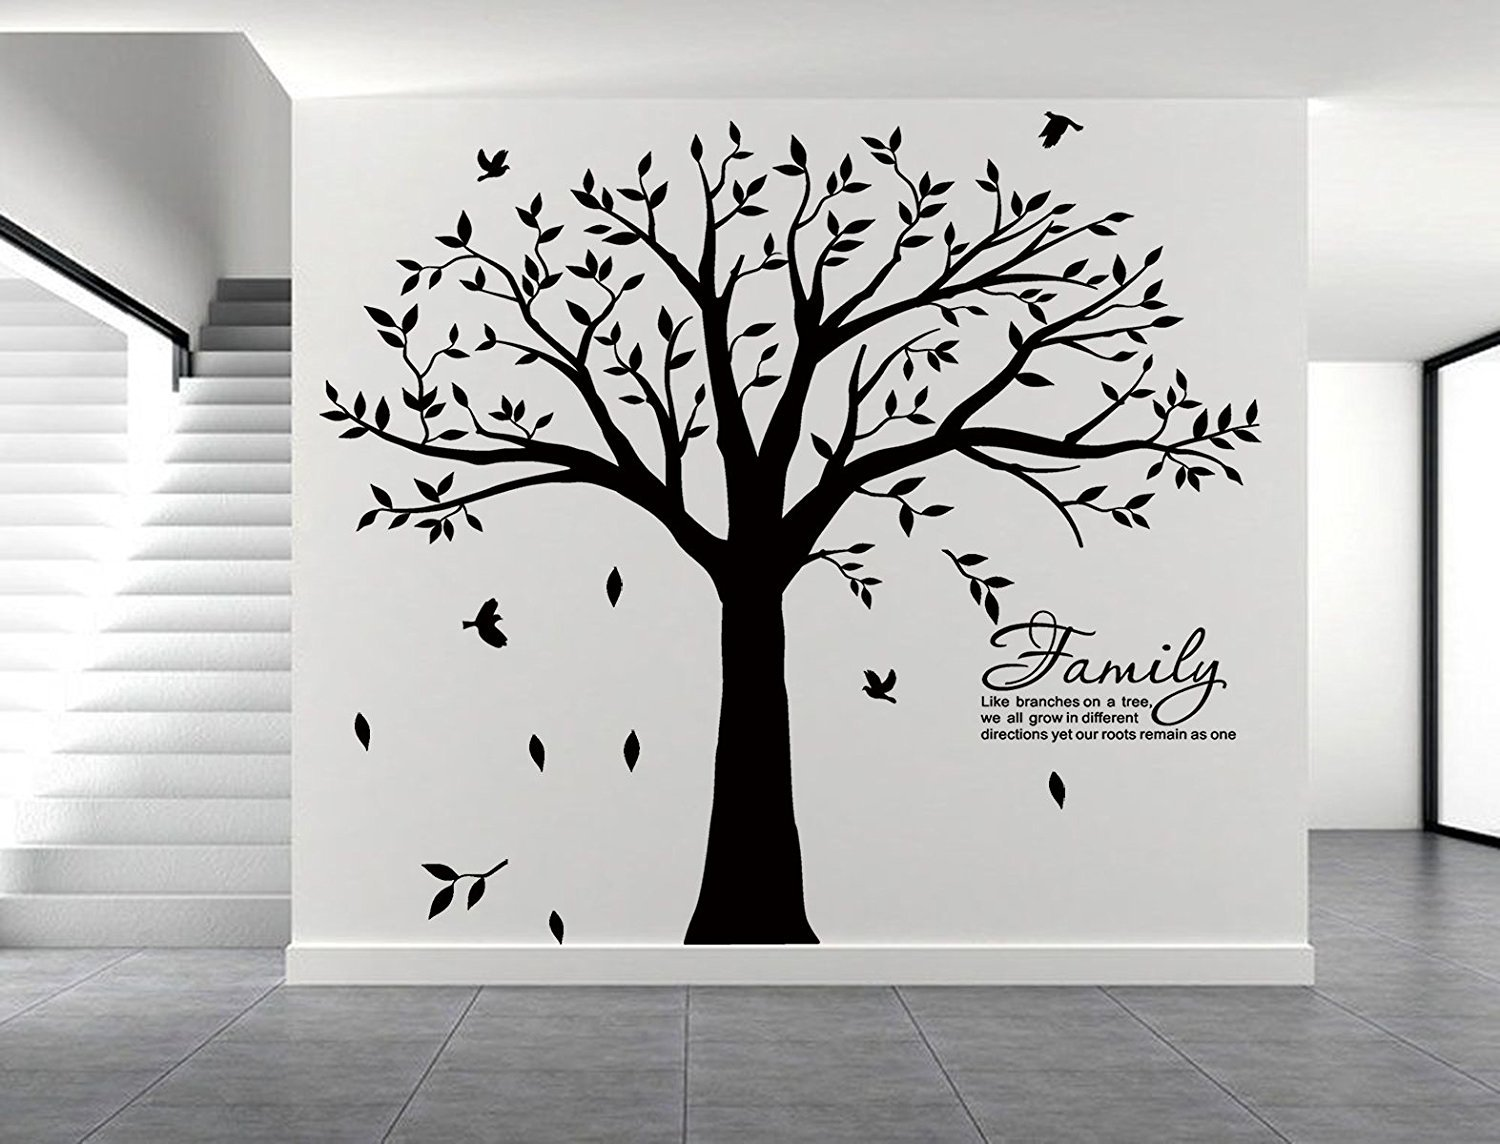 LSKOO Large Family Tree Wall Decal With Family Llike Branches on a Tree Wall Decals Wall Sticks Wall Decorations for Living Room (Black) by LSKOO